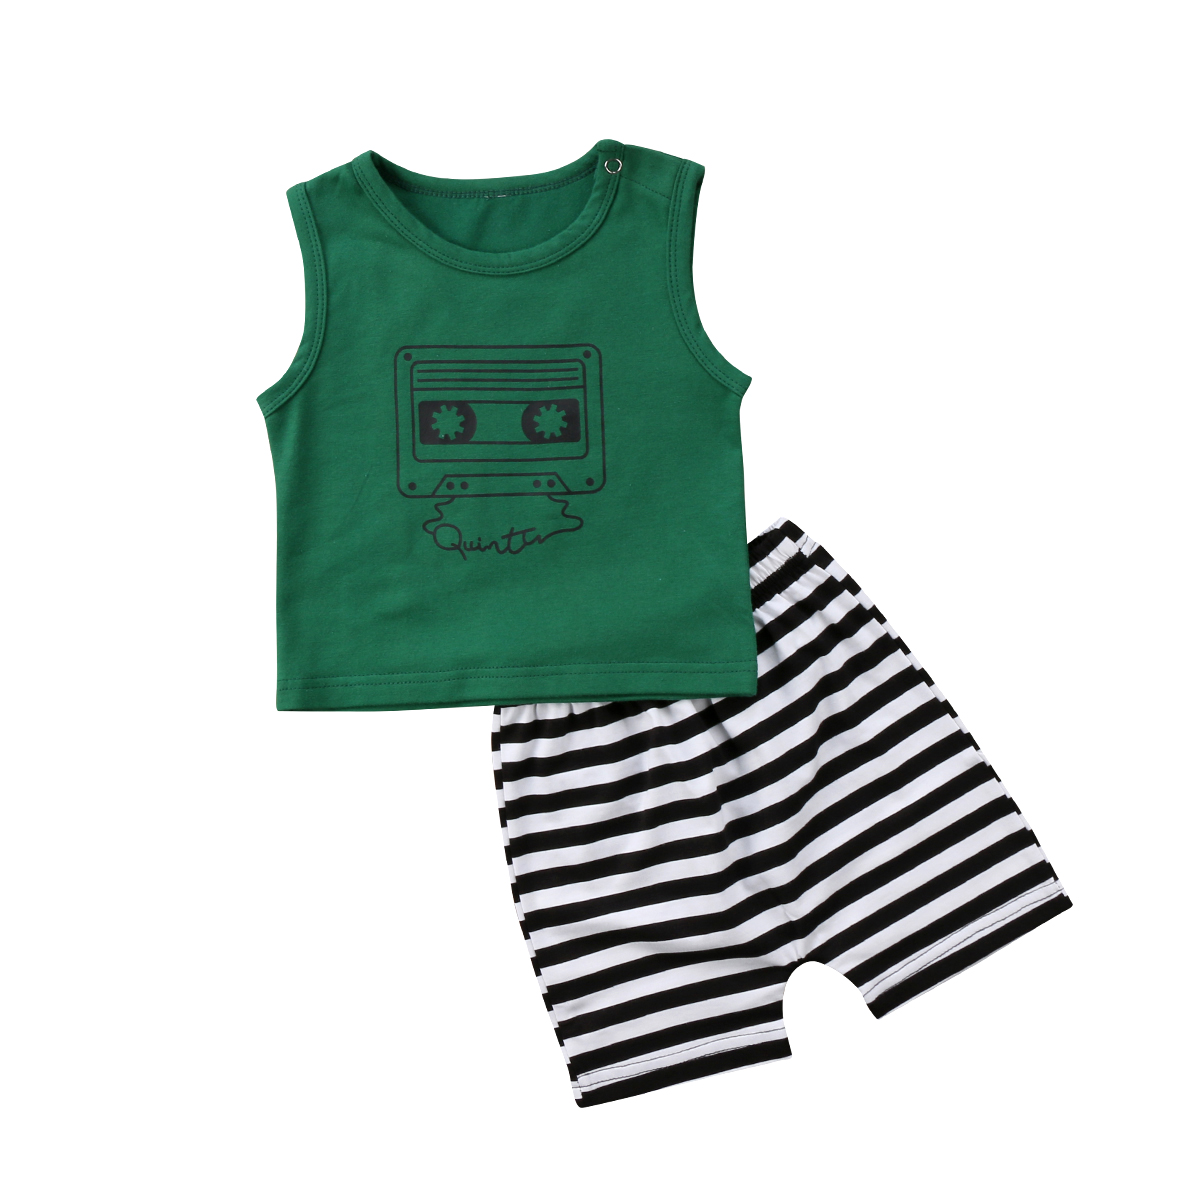 2pcs Newborn Baby Boys Girls Kids Green Sleeveless T-shirt Tops+ Short Black White Striped Pants Trousers Outfit Clothes Set infant toddler kids baby girls summer outfit cotton striped sleeveless tops dress floral short pants girls clothes sunsuit 0 4y